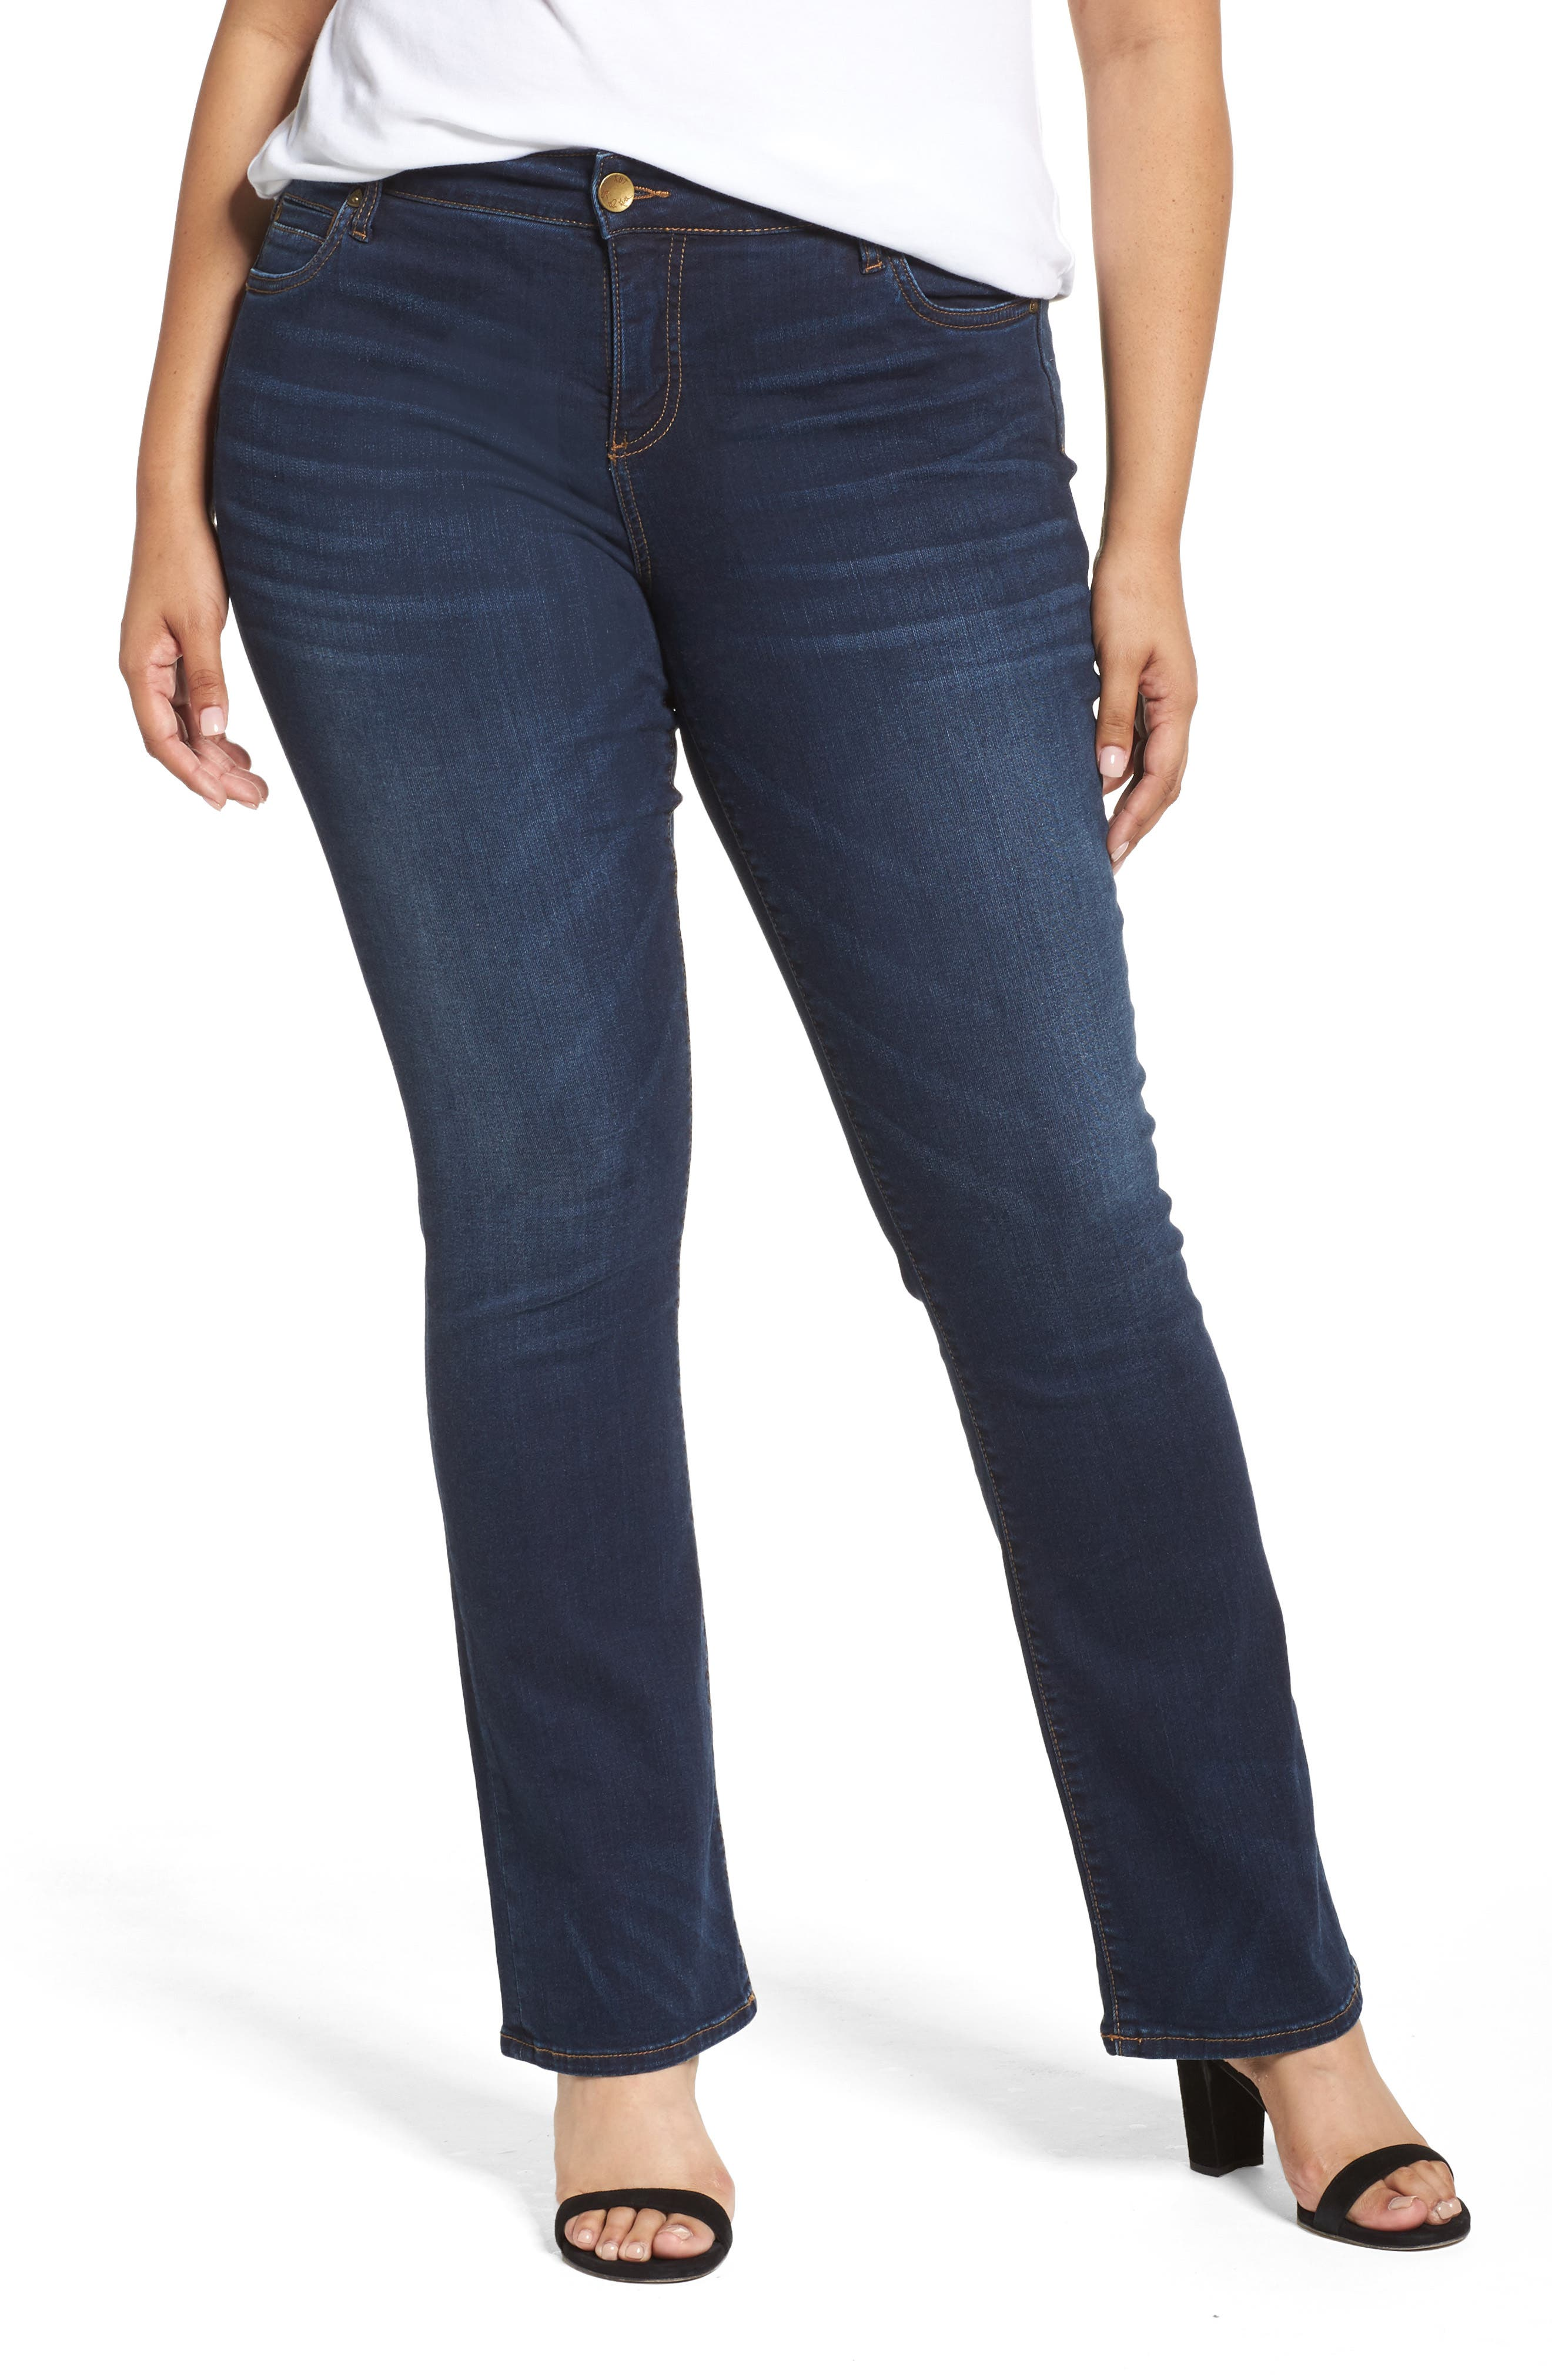 KUT FROM THE KLOTH Natalie High Waist Bootcut Jeans, Main, color, CLOSENESS W/ EURO BASE WASH